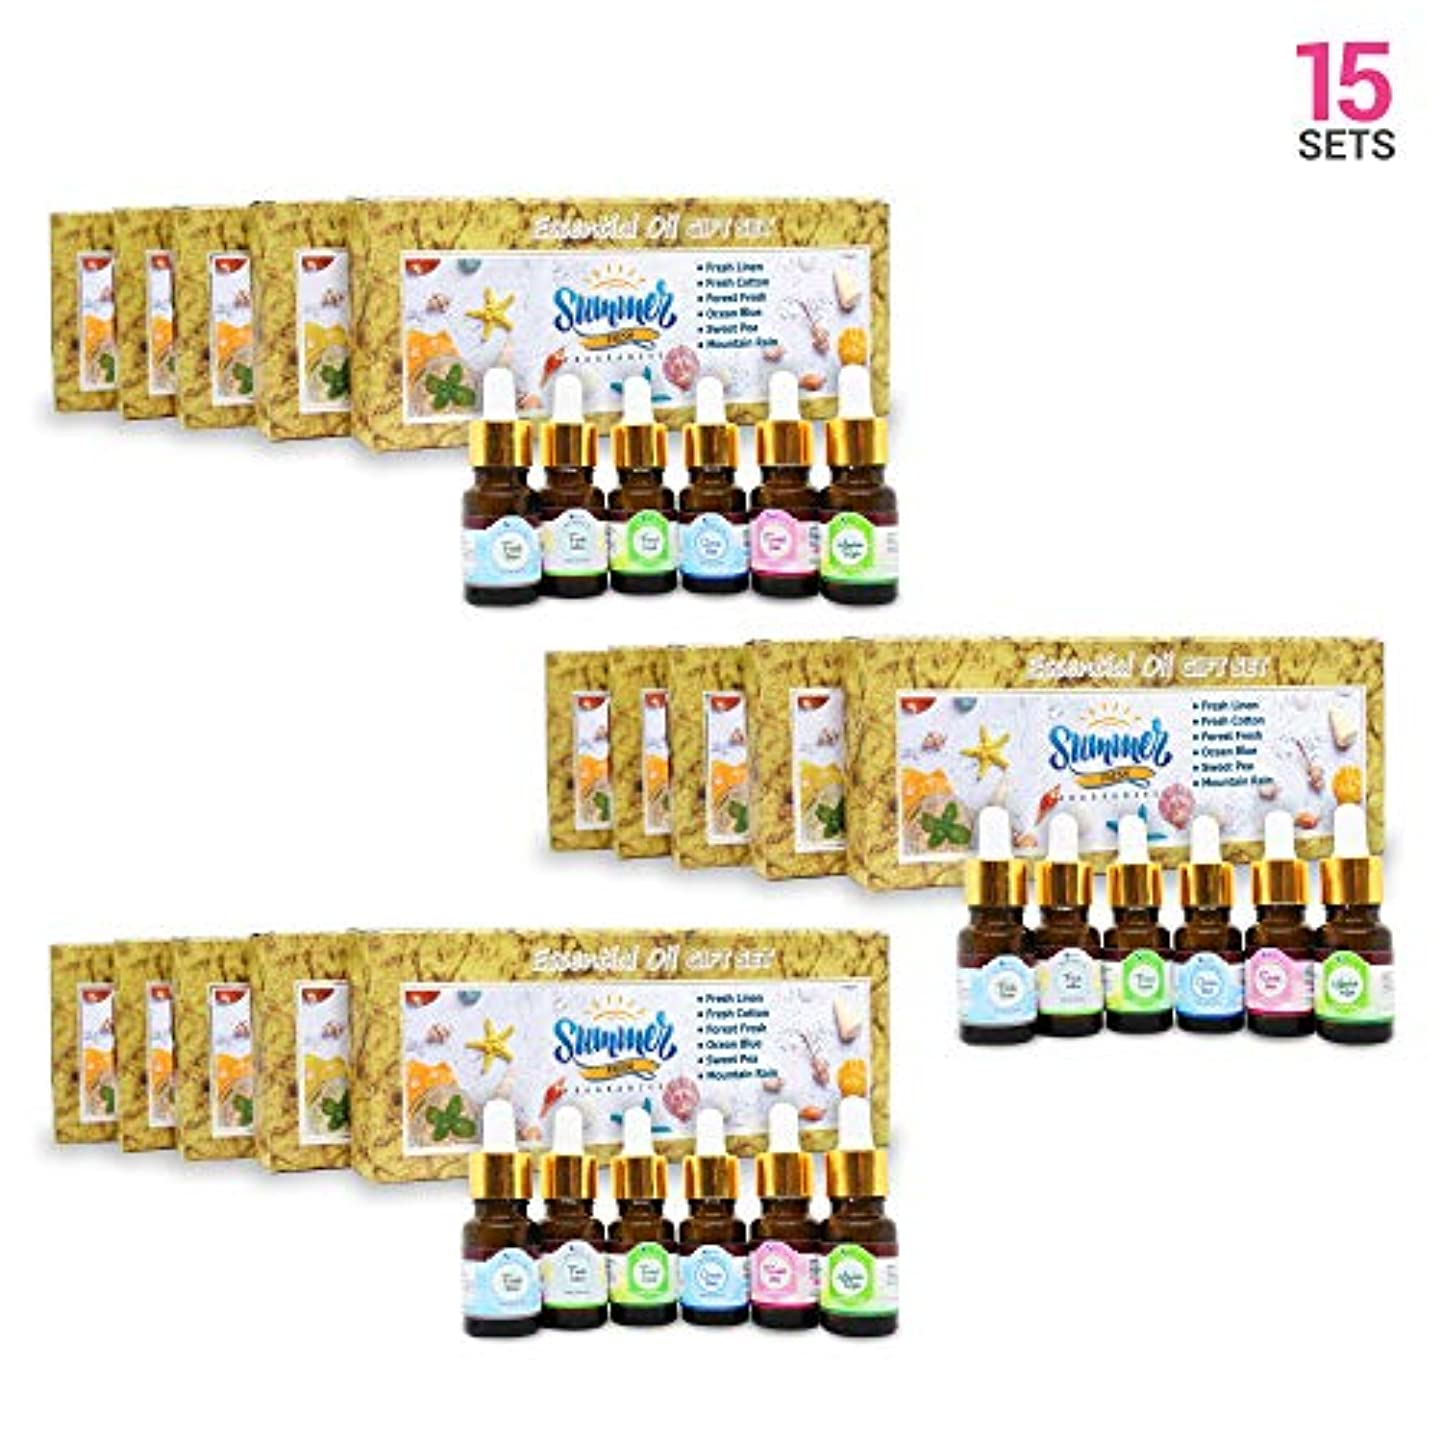 ラバ寄託議論するAromatherapy Fragrance Oils (Set of 15) - 100% Natural Therapeutic Essential Oils, 10ml each (Fresh Linen, Fresh...